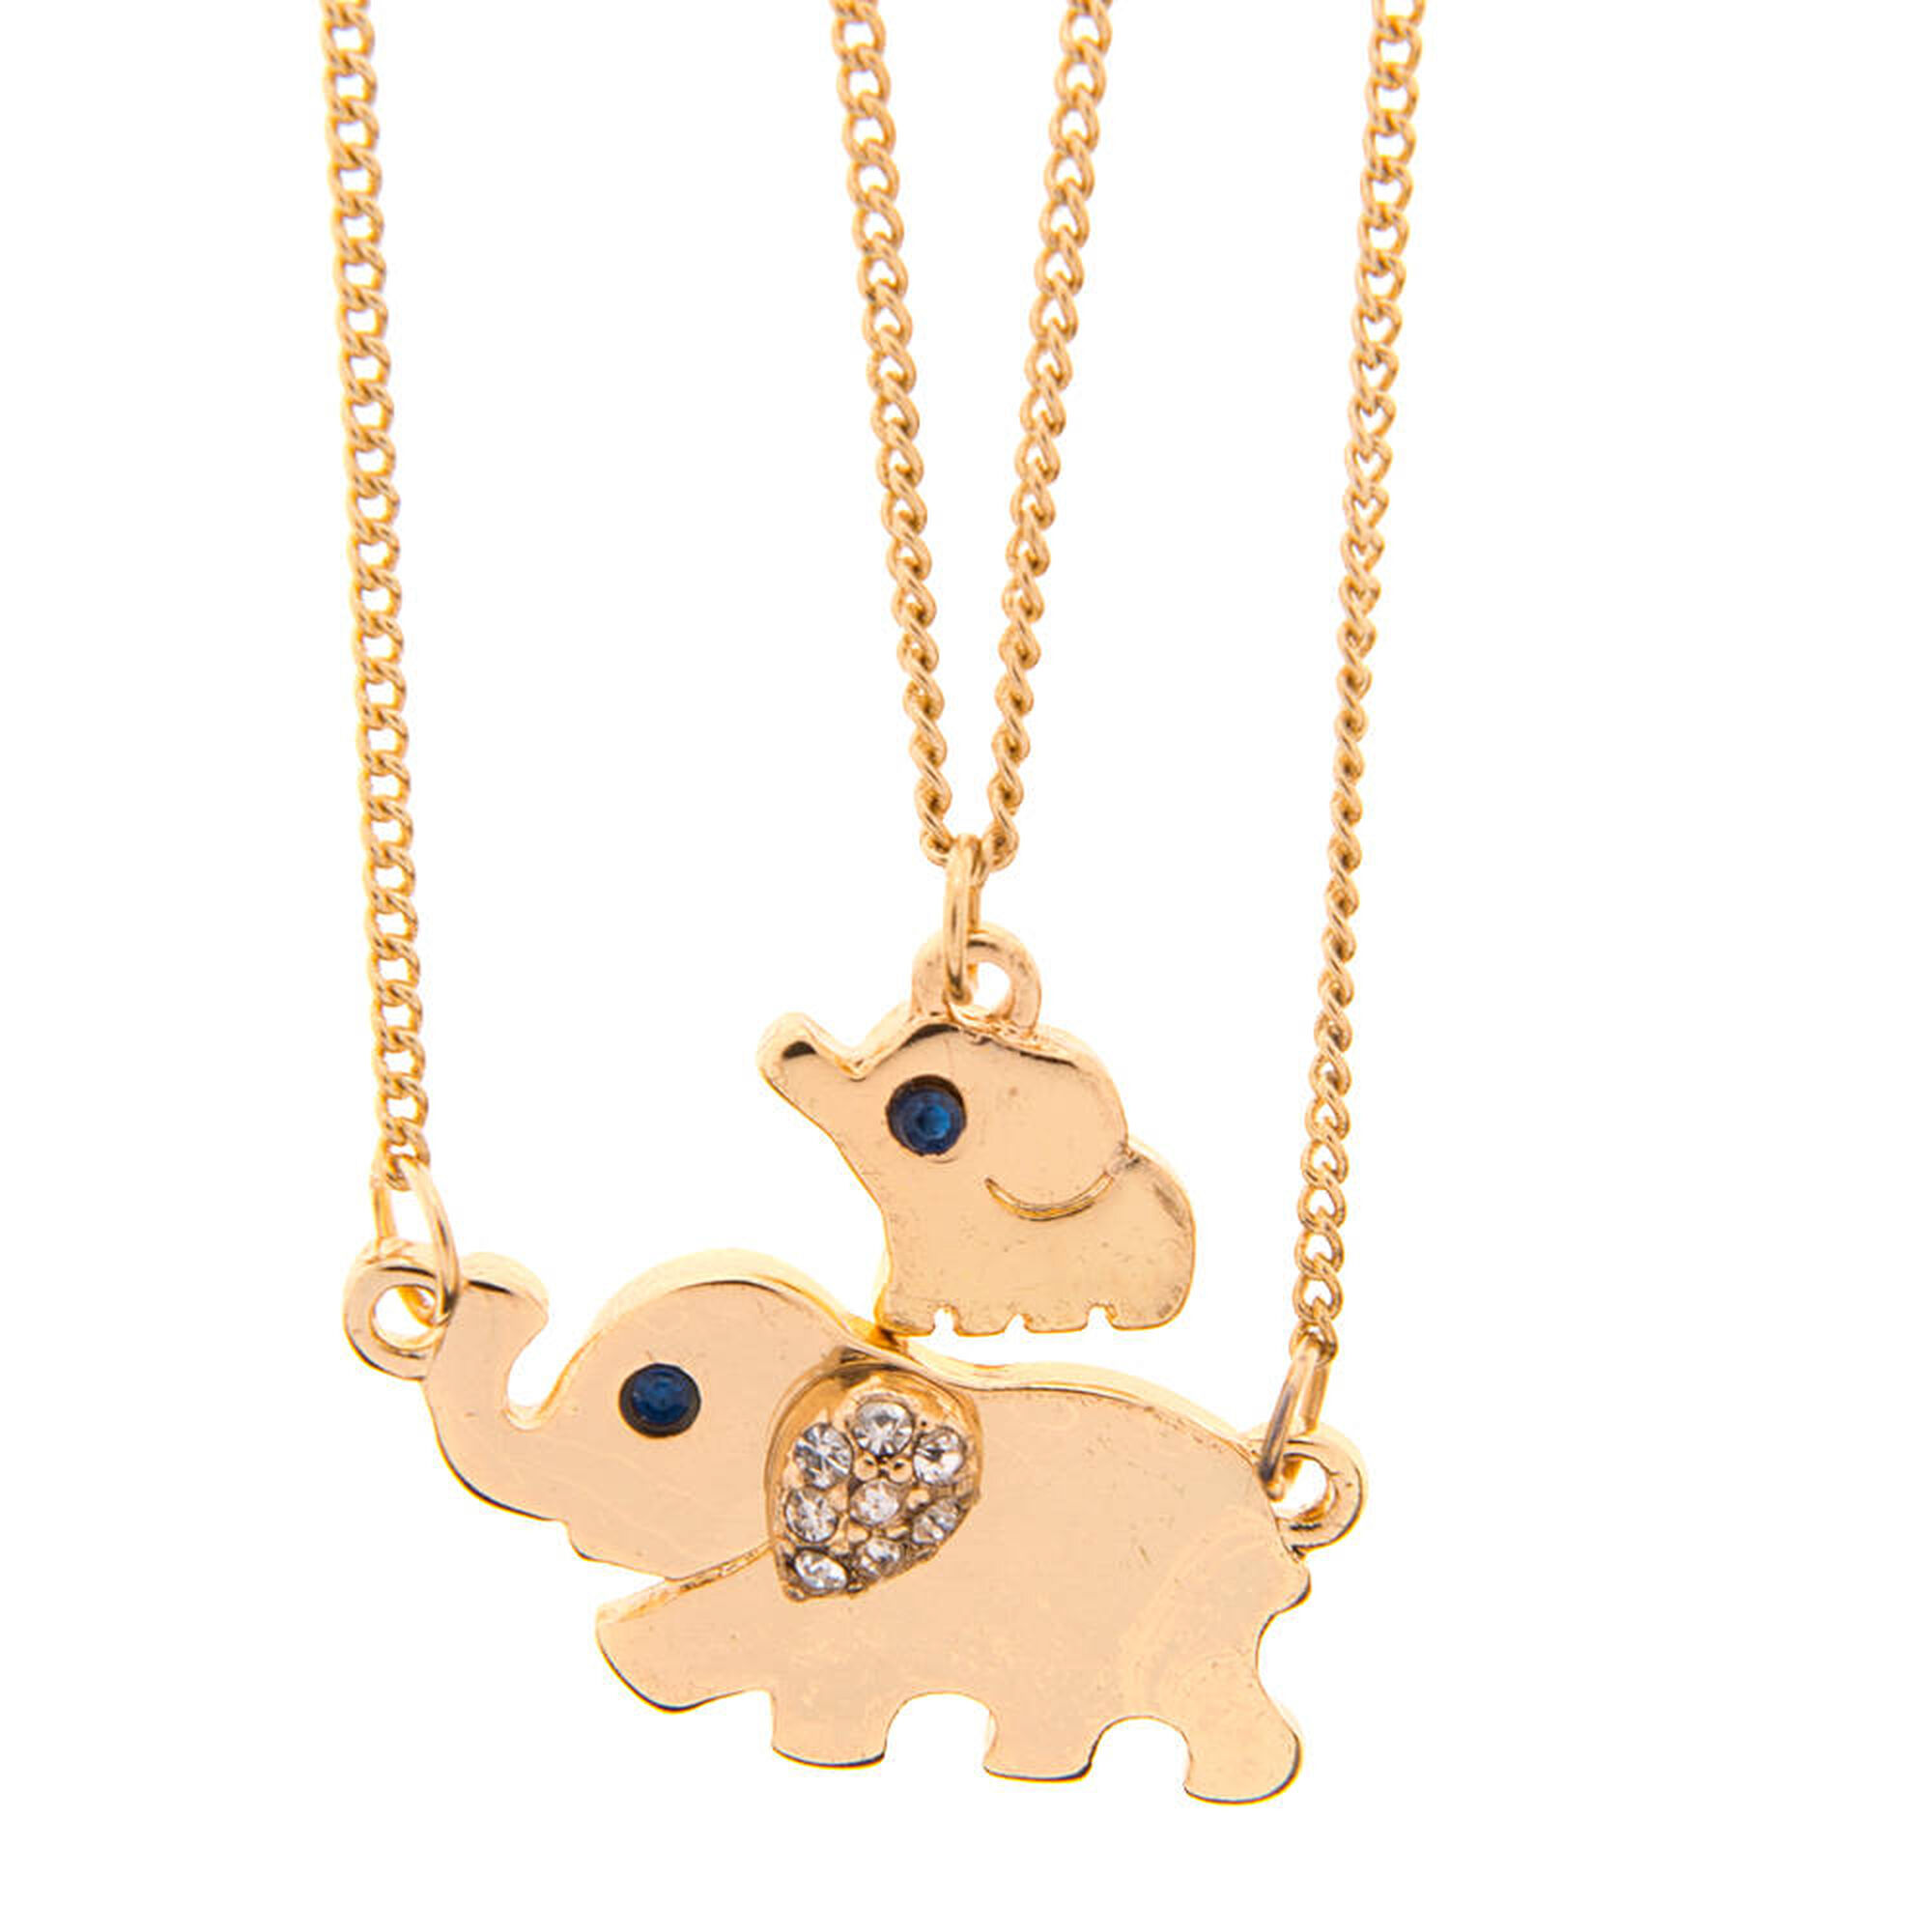 canada elephant pendant thousand necklace shop villages ten en all products